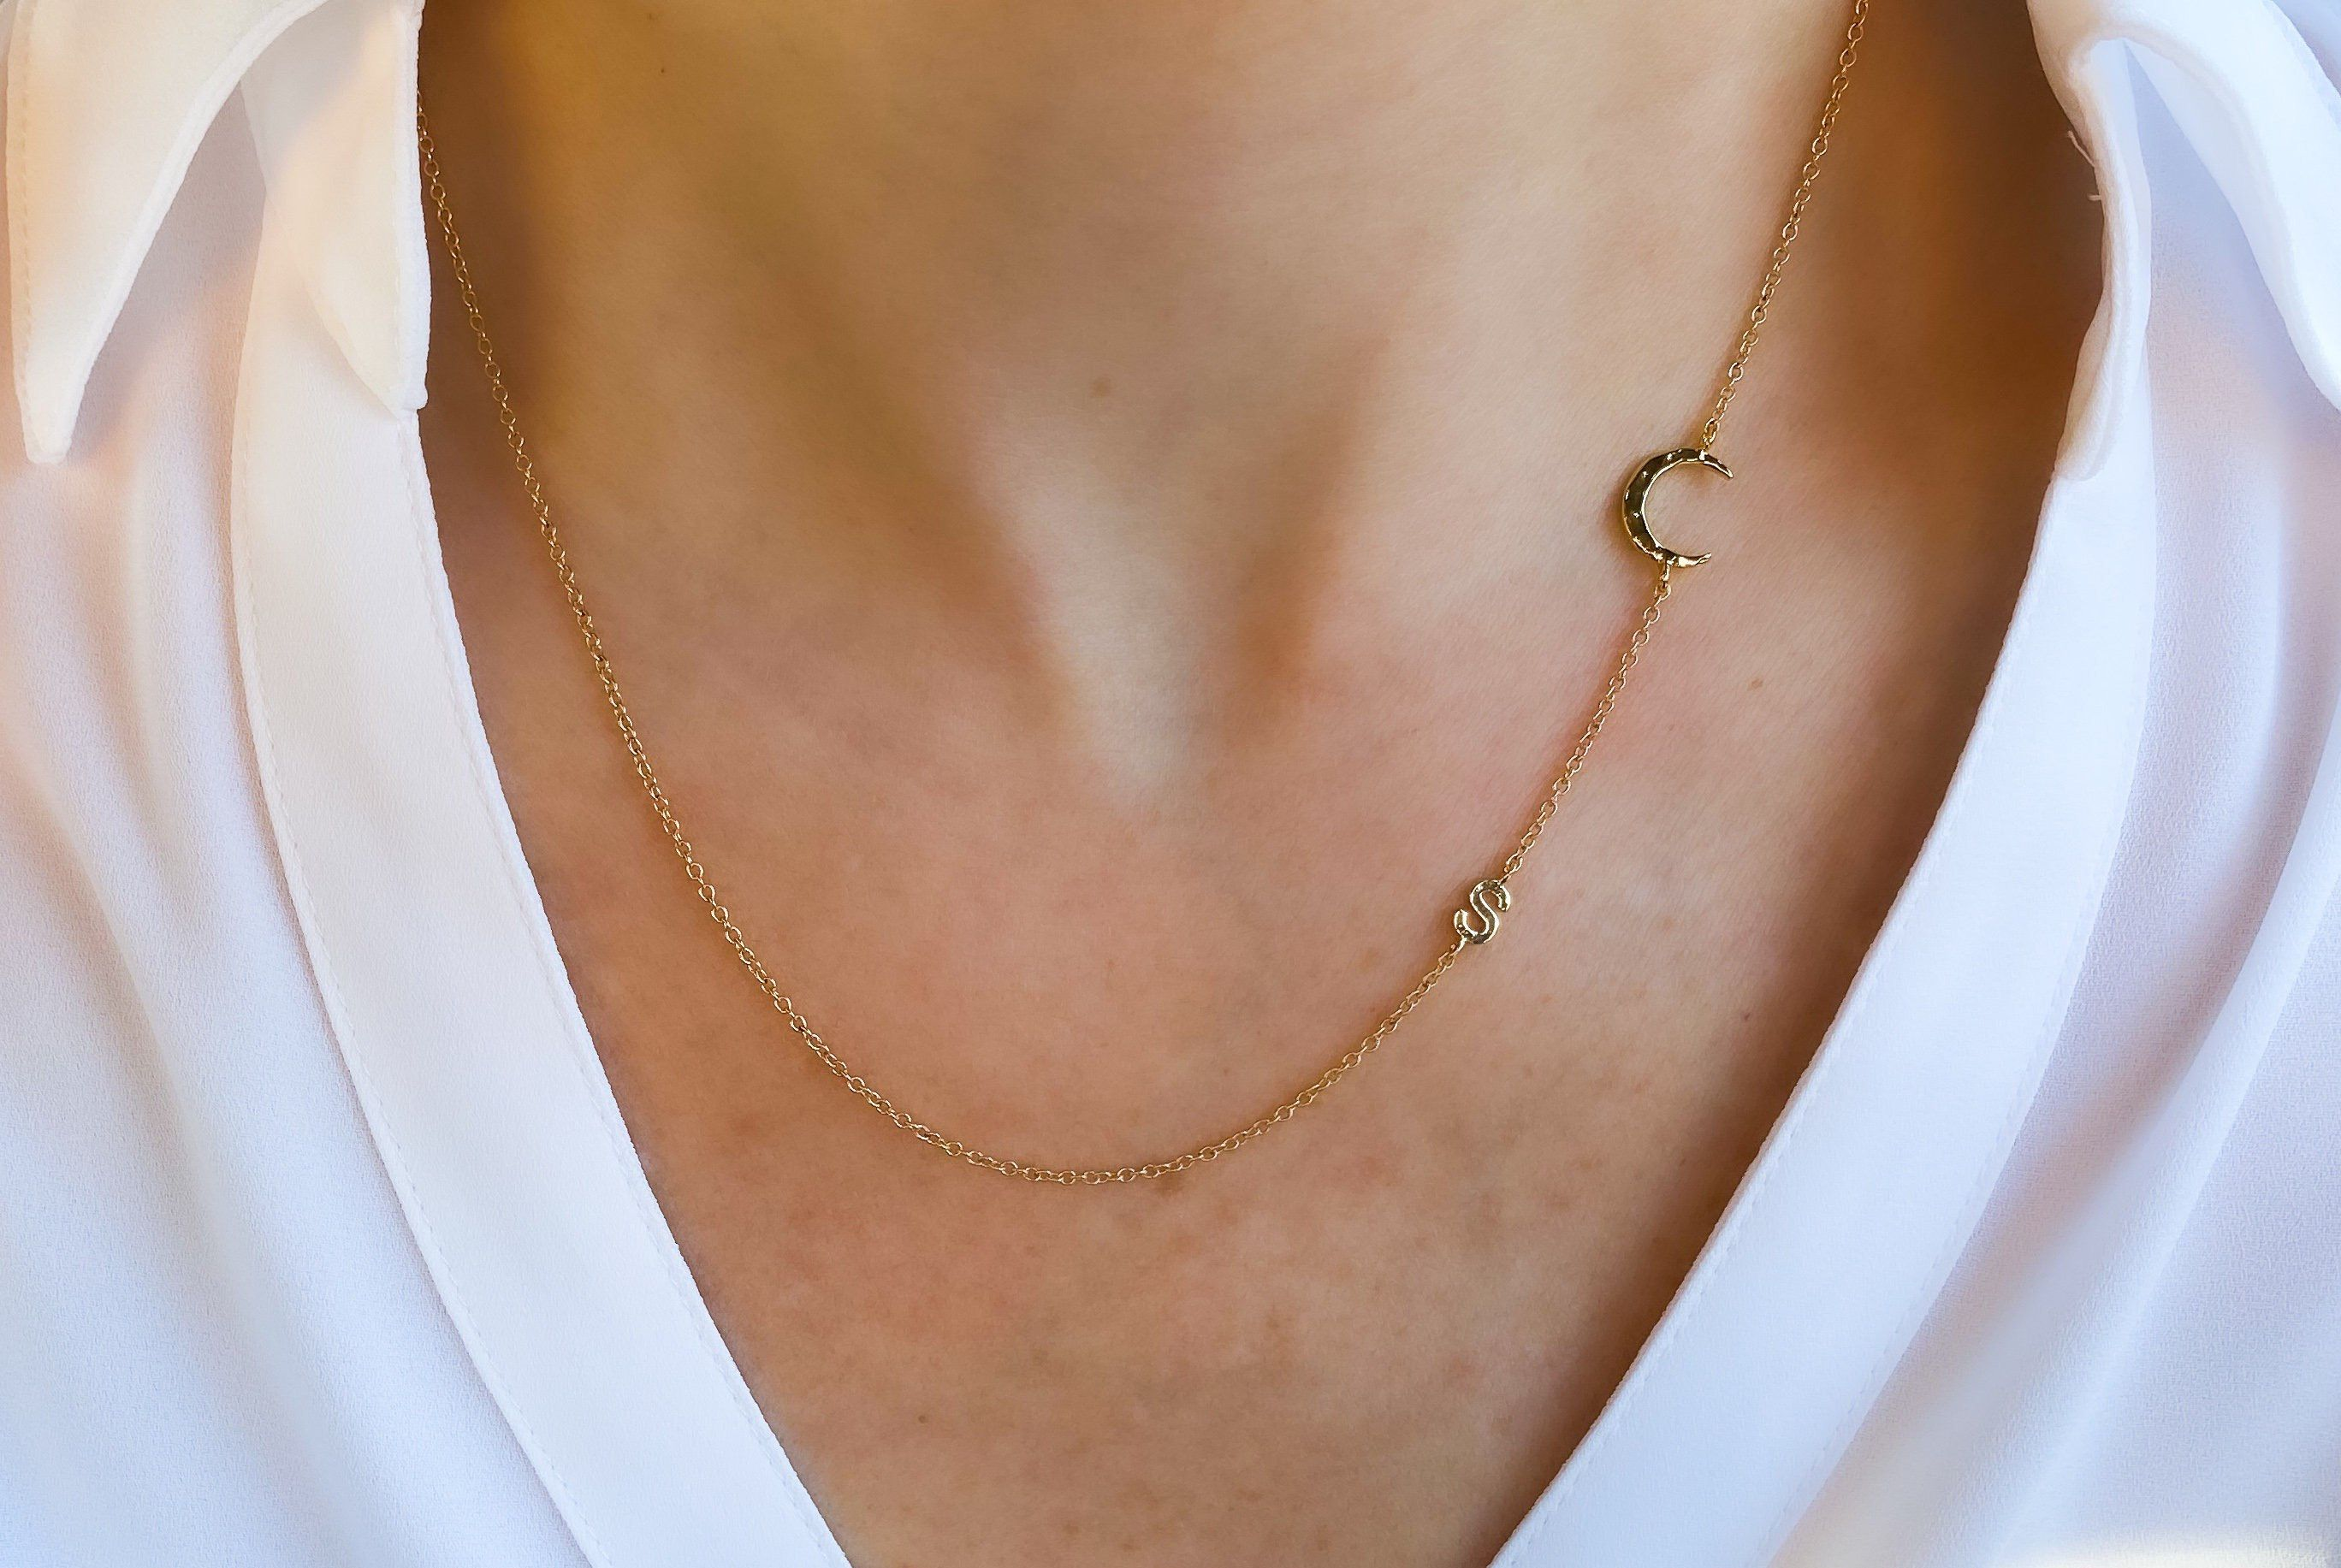 Photo of Initial with crescent moon necklace